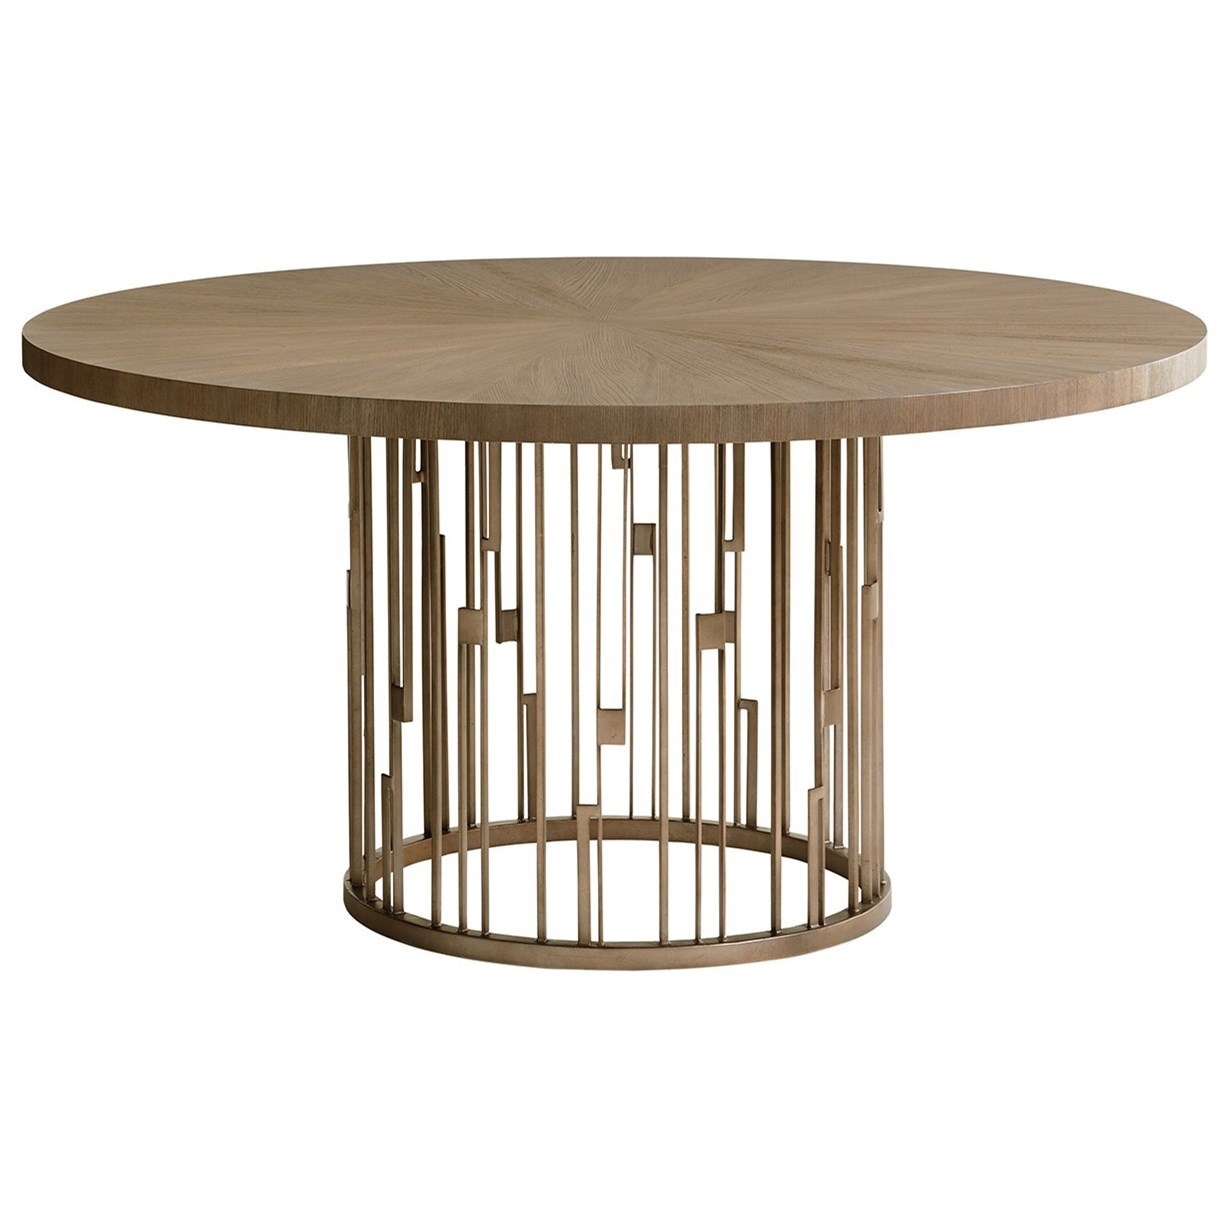 Shadow Play Rendezvous Dining Table by Lexington at C. S. Wo & Sons California